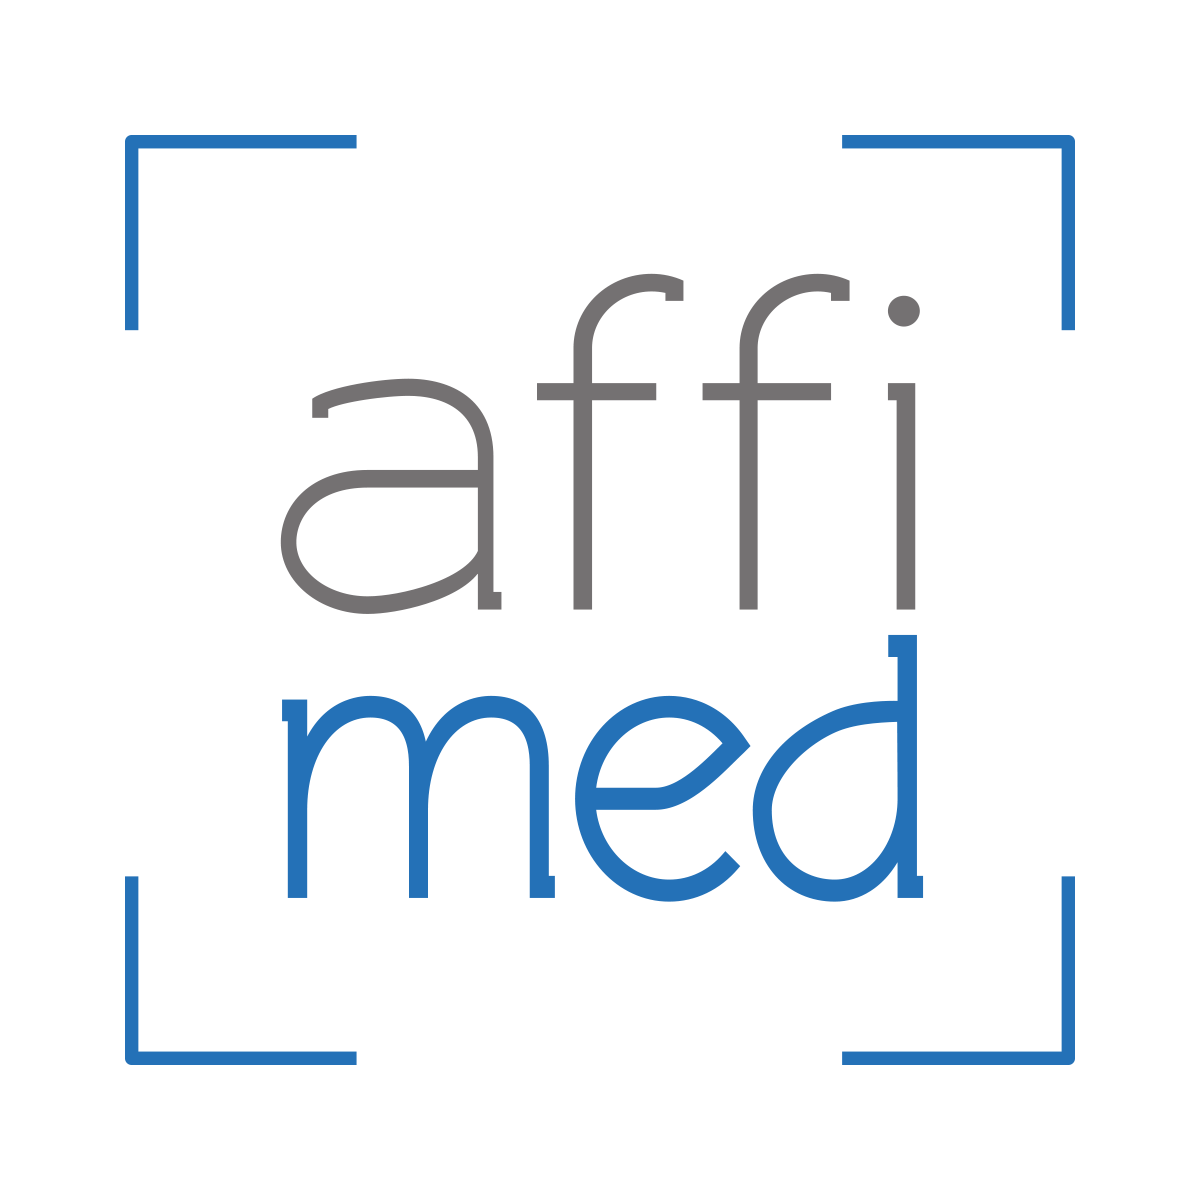 Affimed Therapeutics